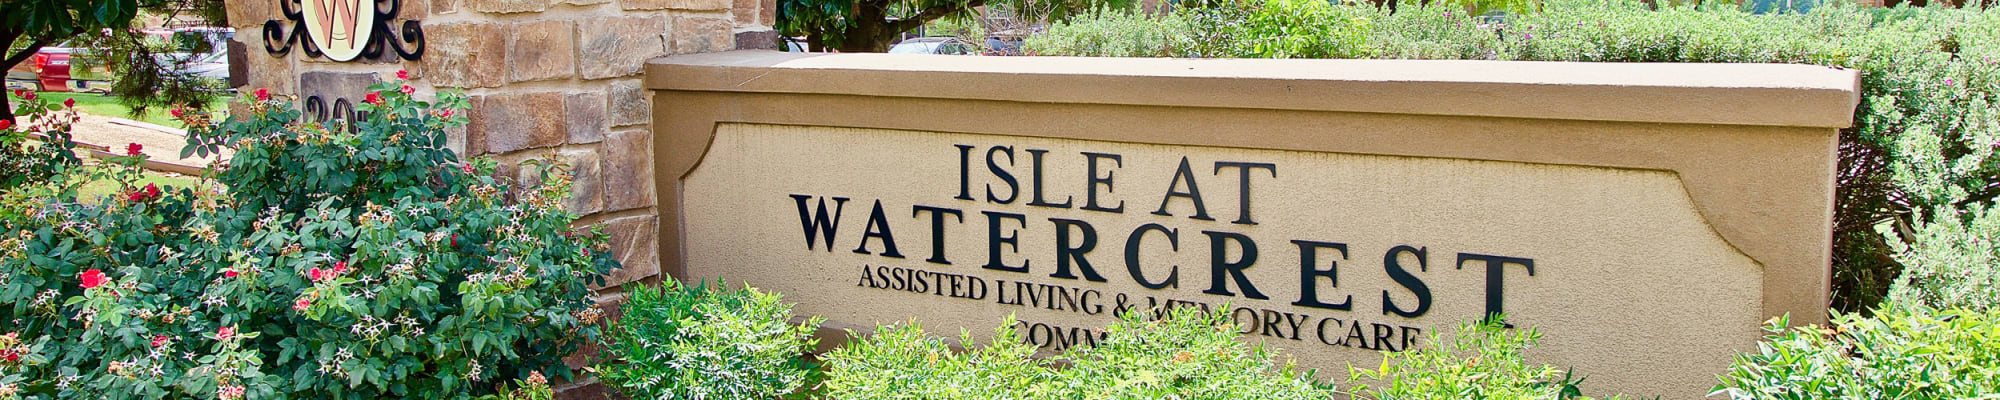 Activities & wellness at Isle at Watercrest Mansfield in Mansfield, Texas